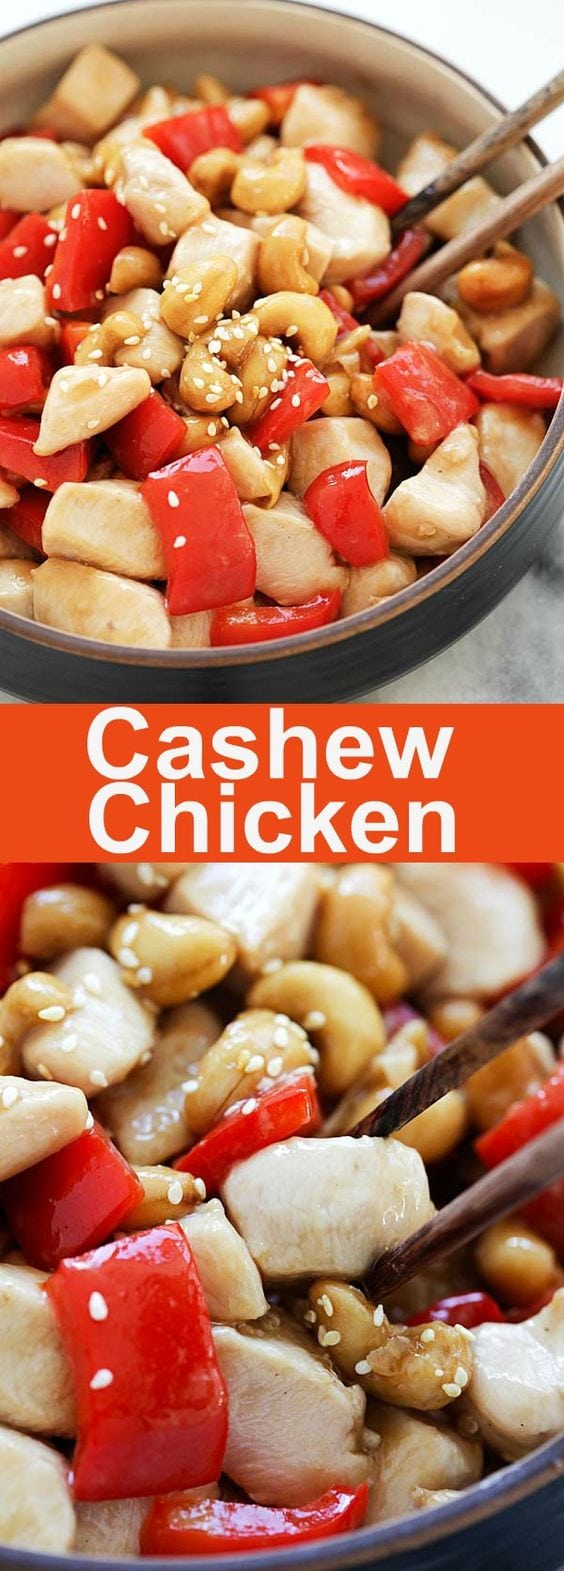 Cashew Chicken - Crazy delicious and easy cashew chicken recipe with tender and silky chicken in Chinese brown sauce. So much better than takeout | rasamalaysia.com